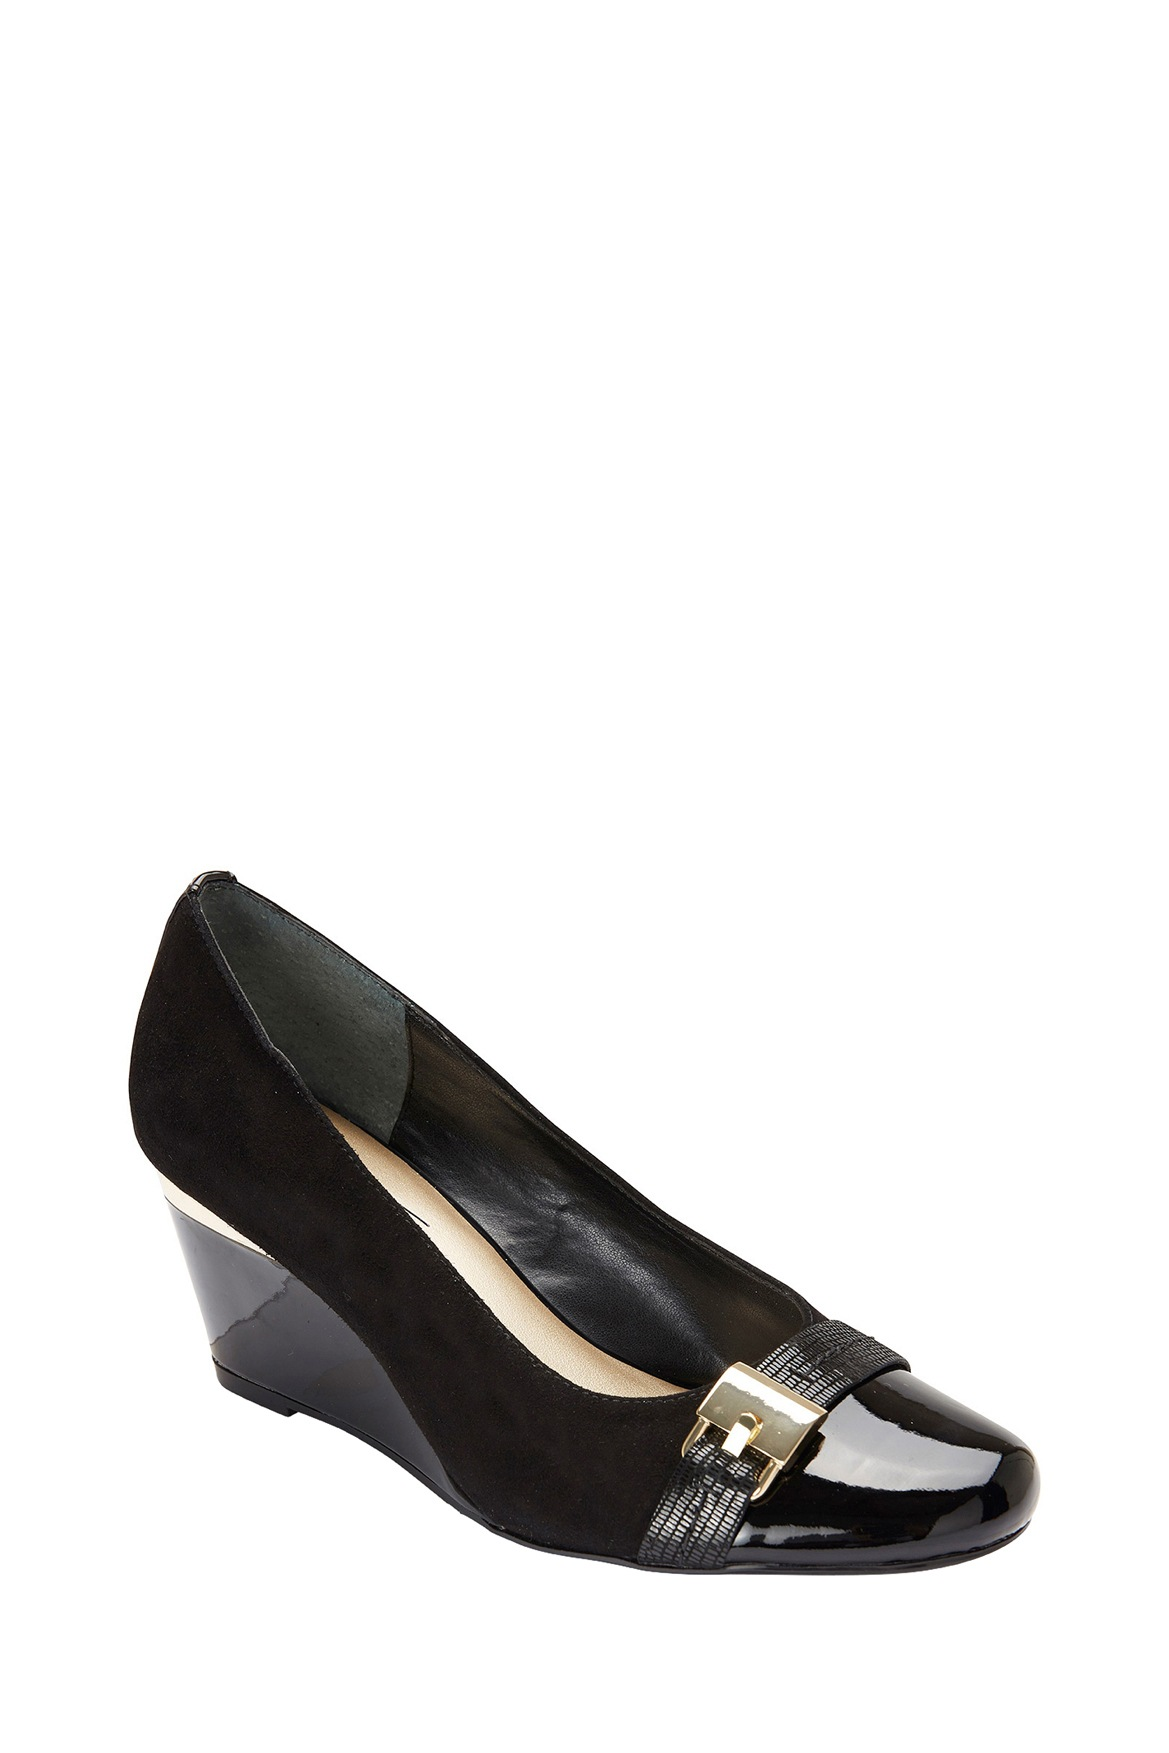 easy steps hammond black patent suede wedge myer